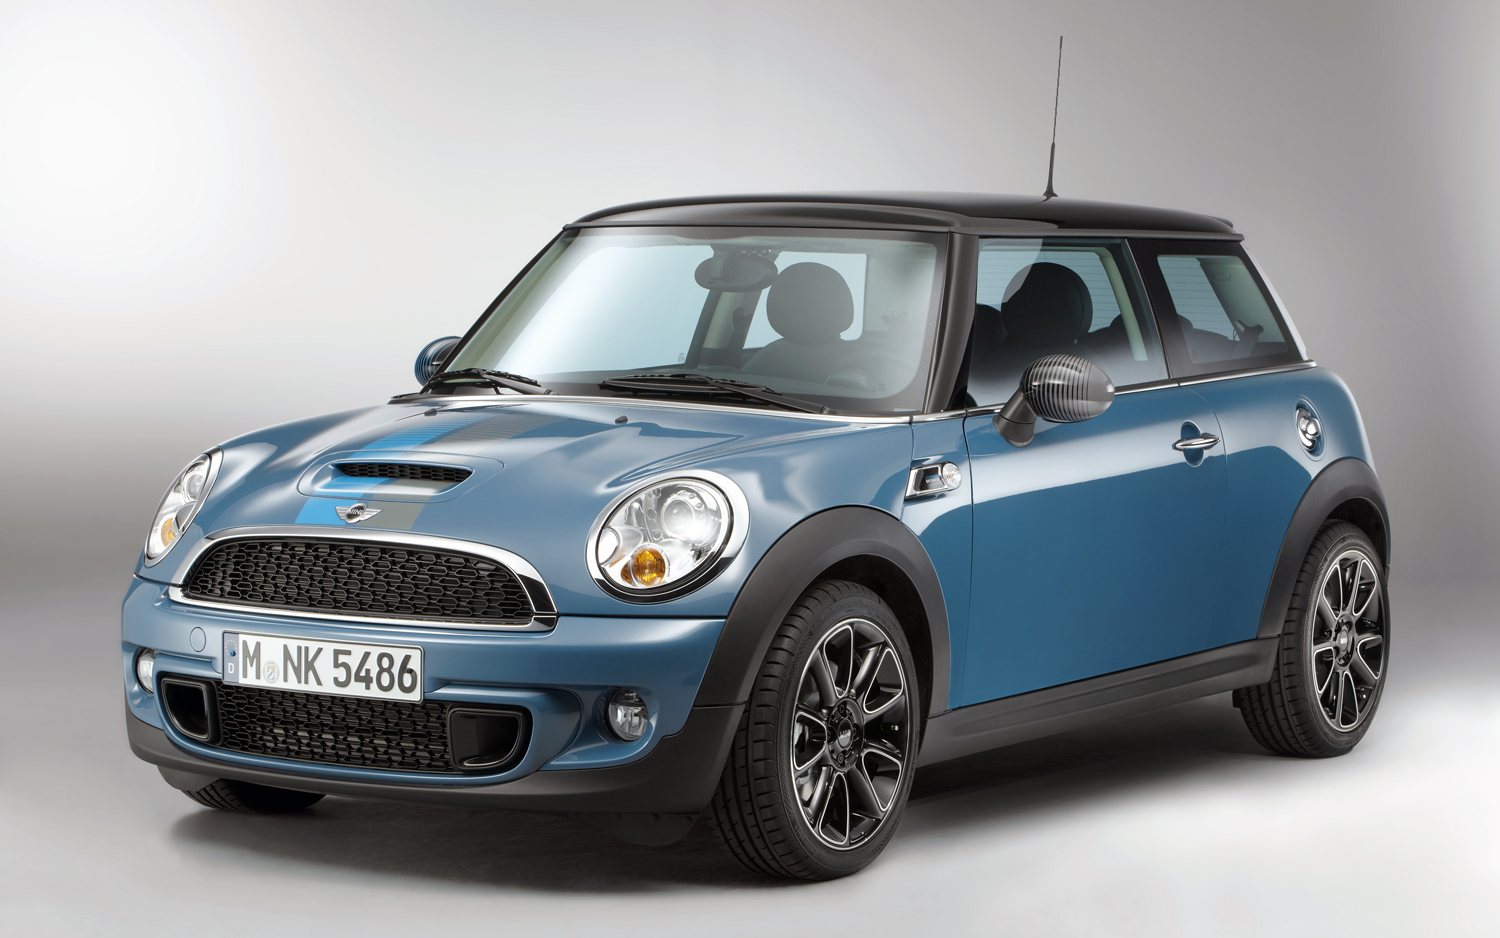 2012 mini cooper information and photos zombiedrive. Black Bedroom Furniture Sets. Home Design Ideas